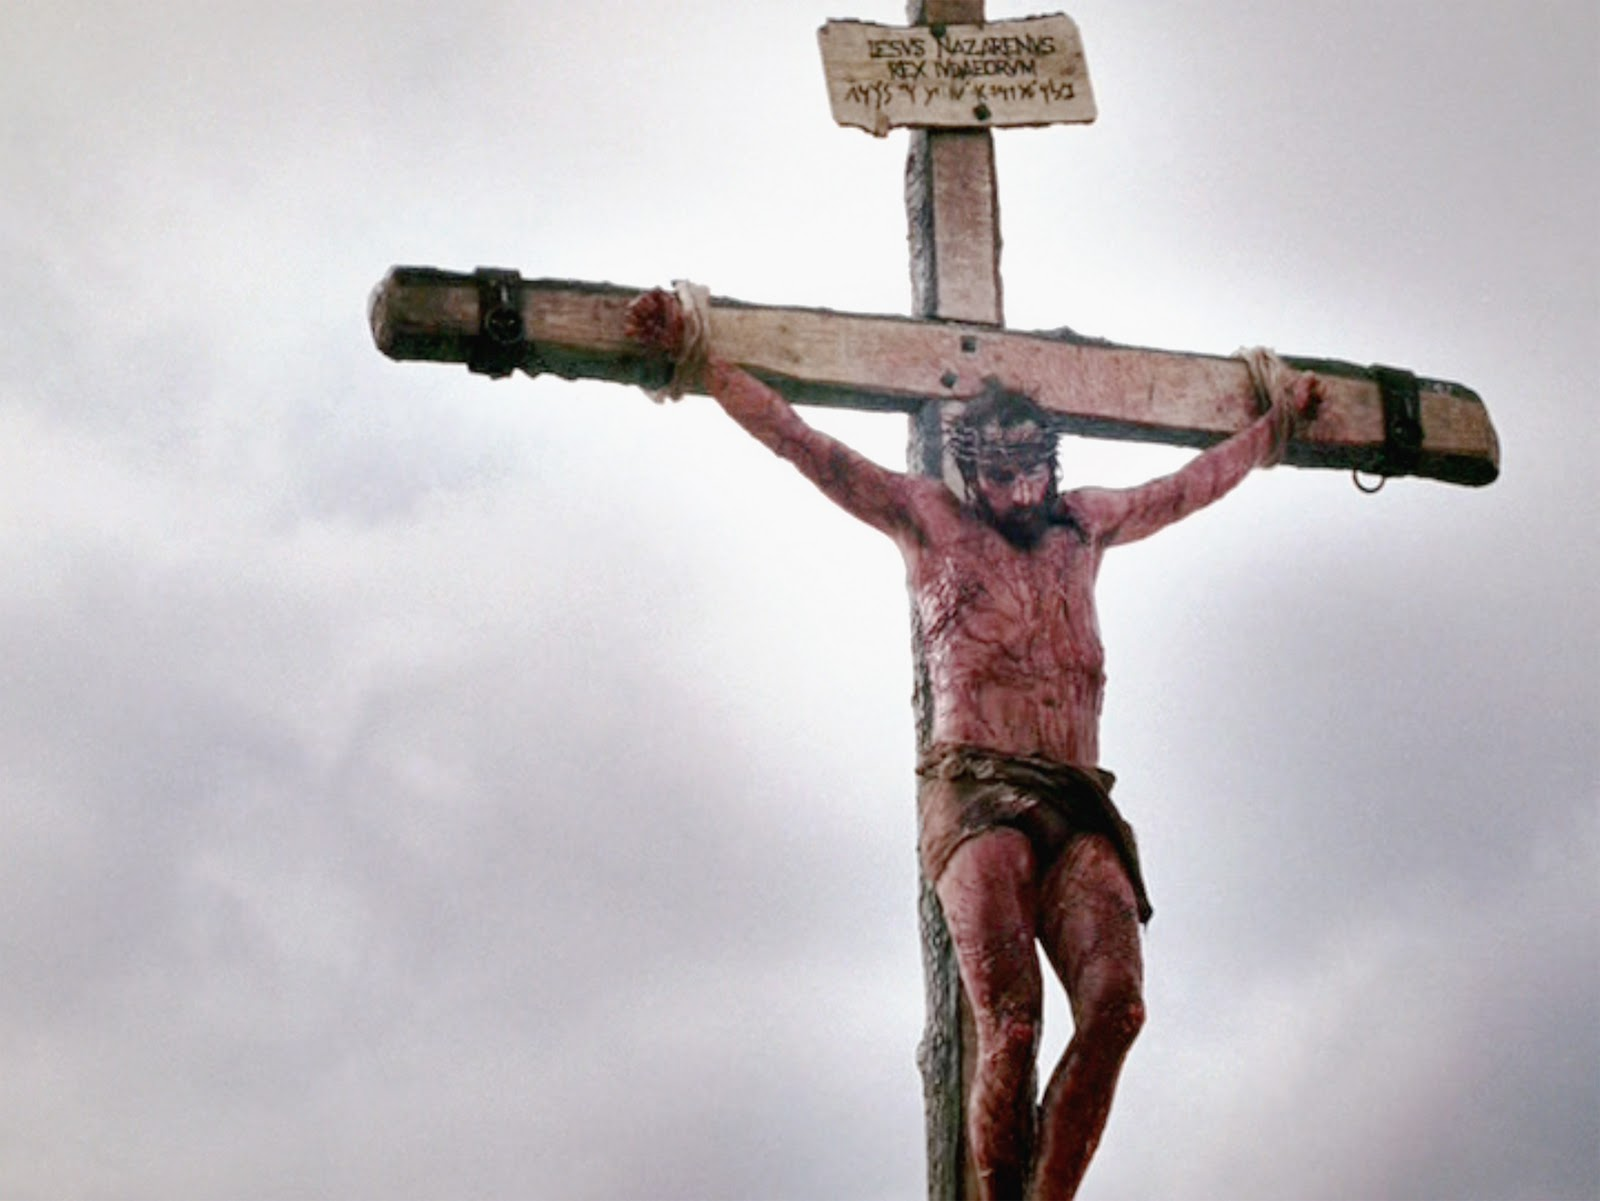 crucifixion of jesus See a rich collection of stock images, vectors, or photos for crucifixion of jesus you can buy on shutterstock explore quality images, photos, art & more.